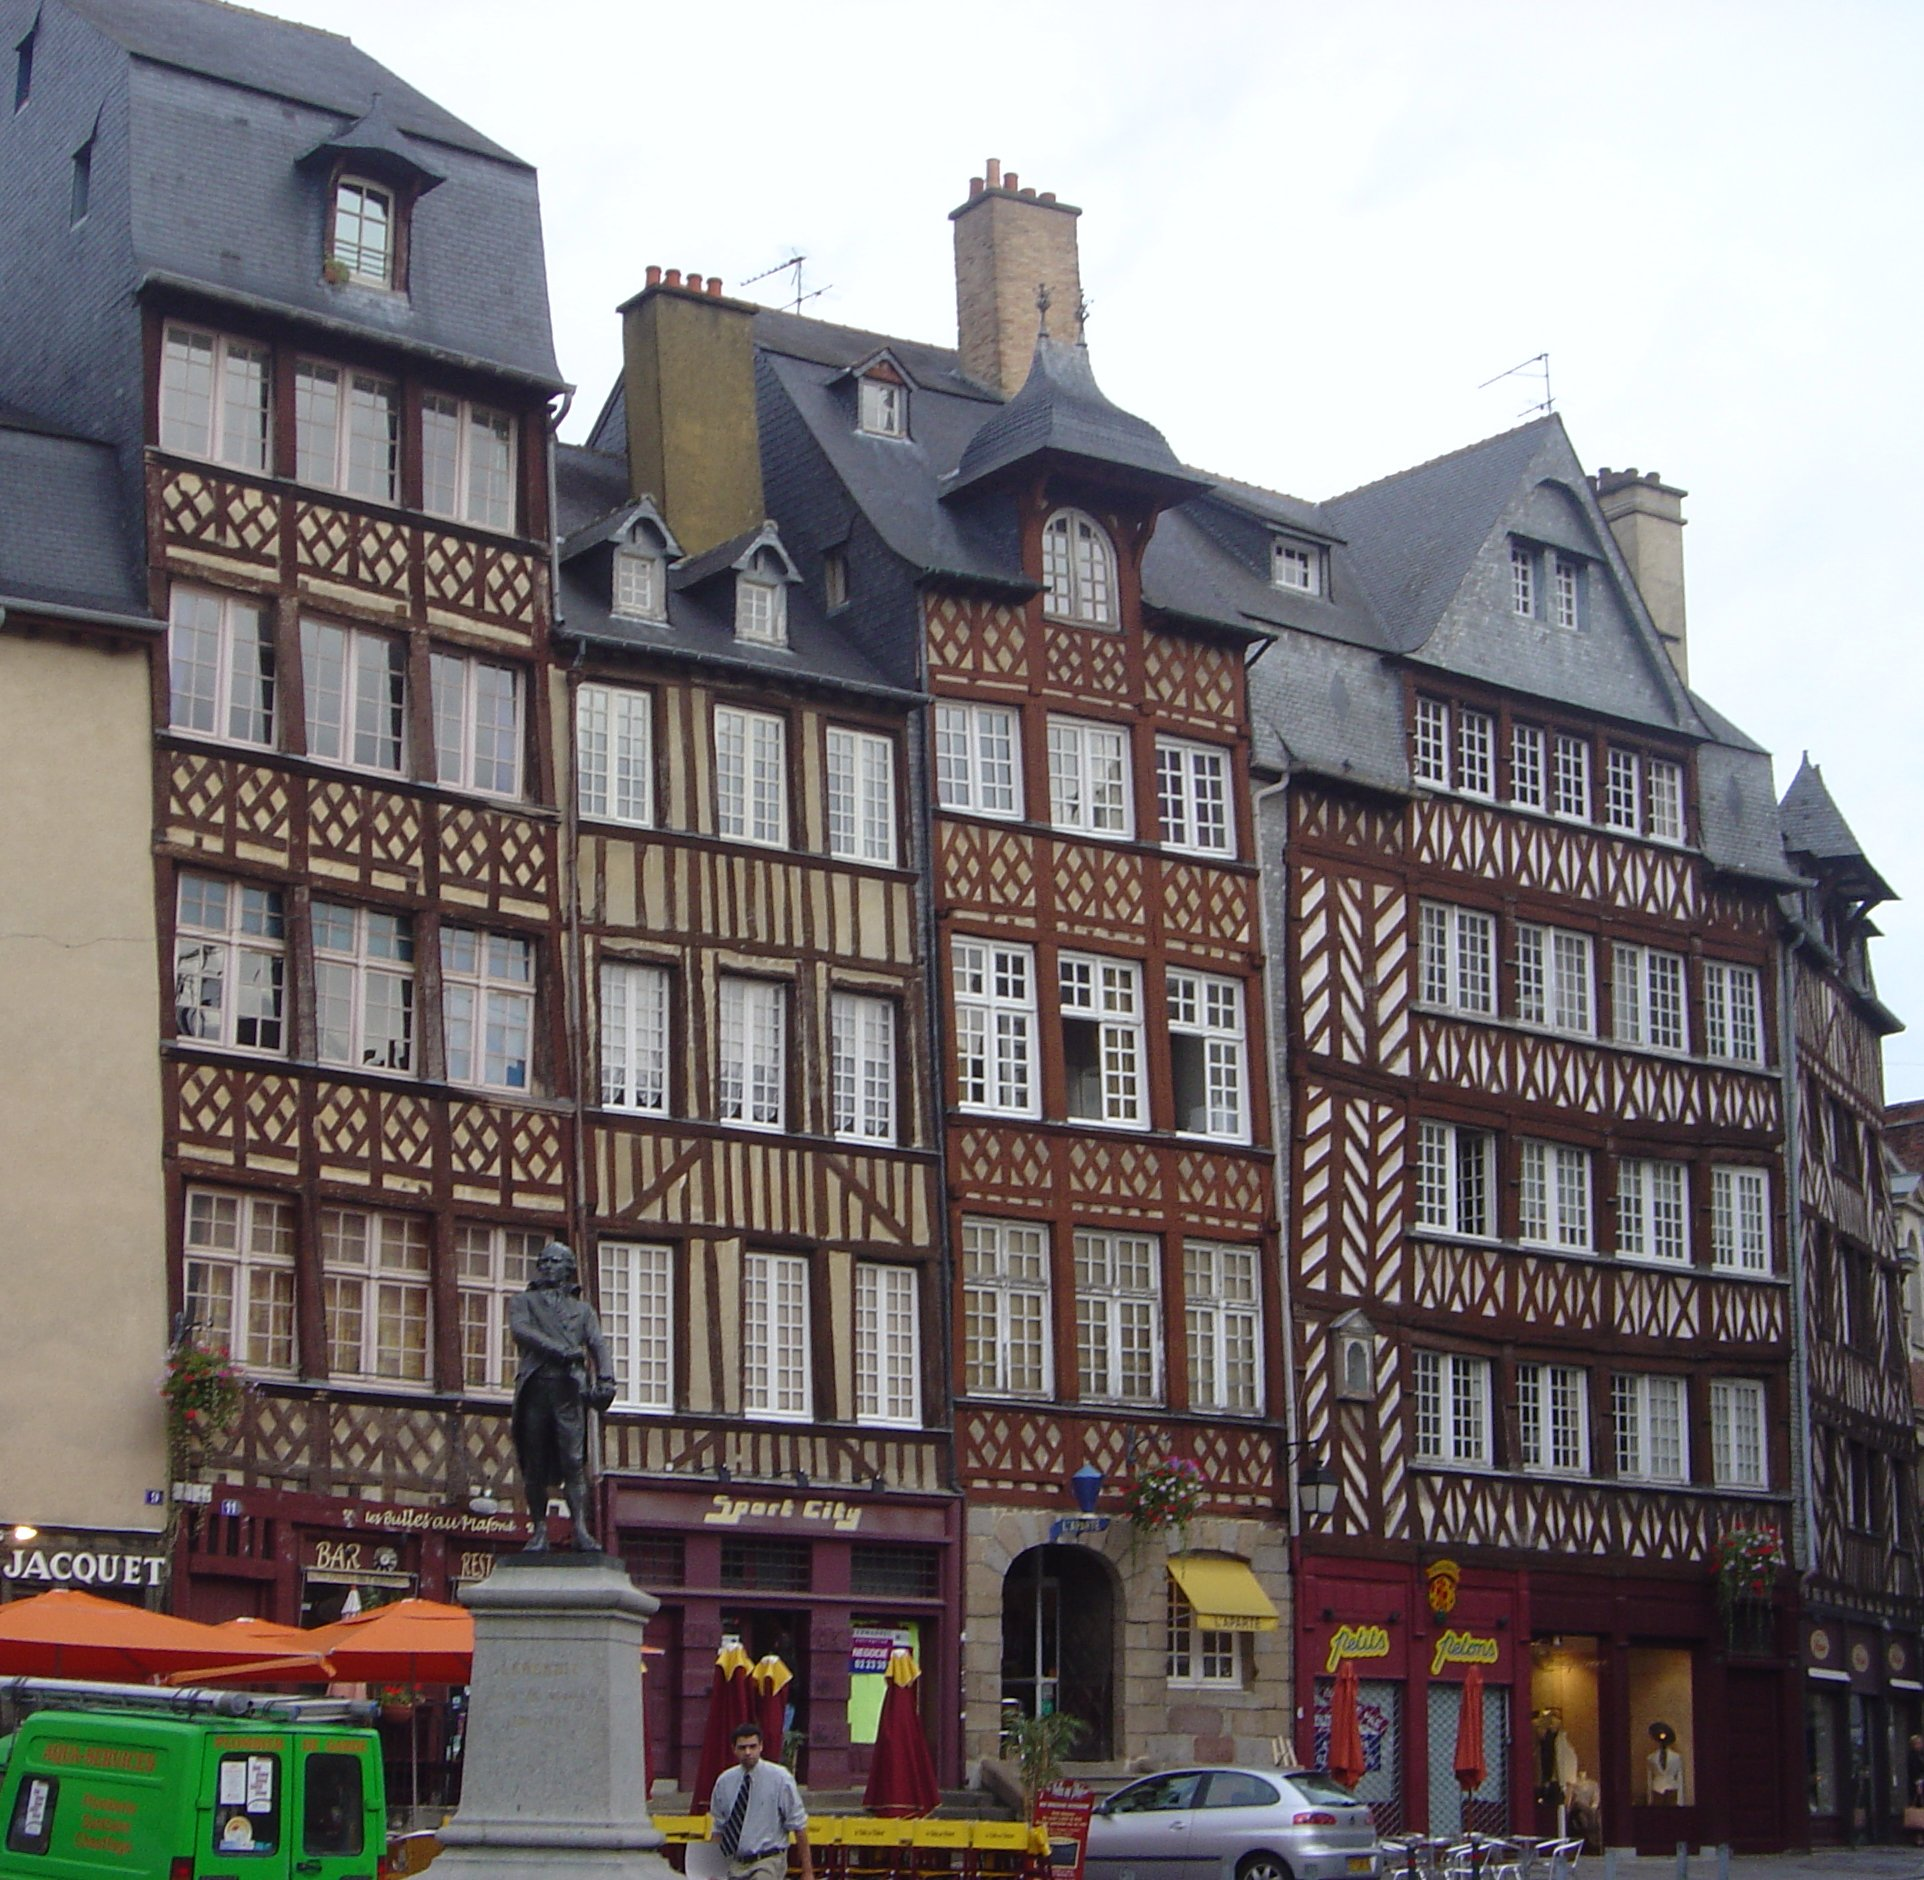 Rennes France  city photos gallery : Original file ‎ 1,924 × 1,880 pixels, file size: 605 KB, MIME type ...